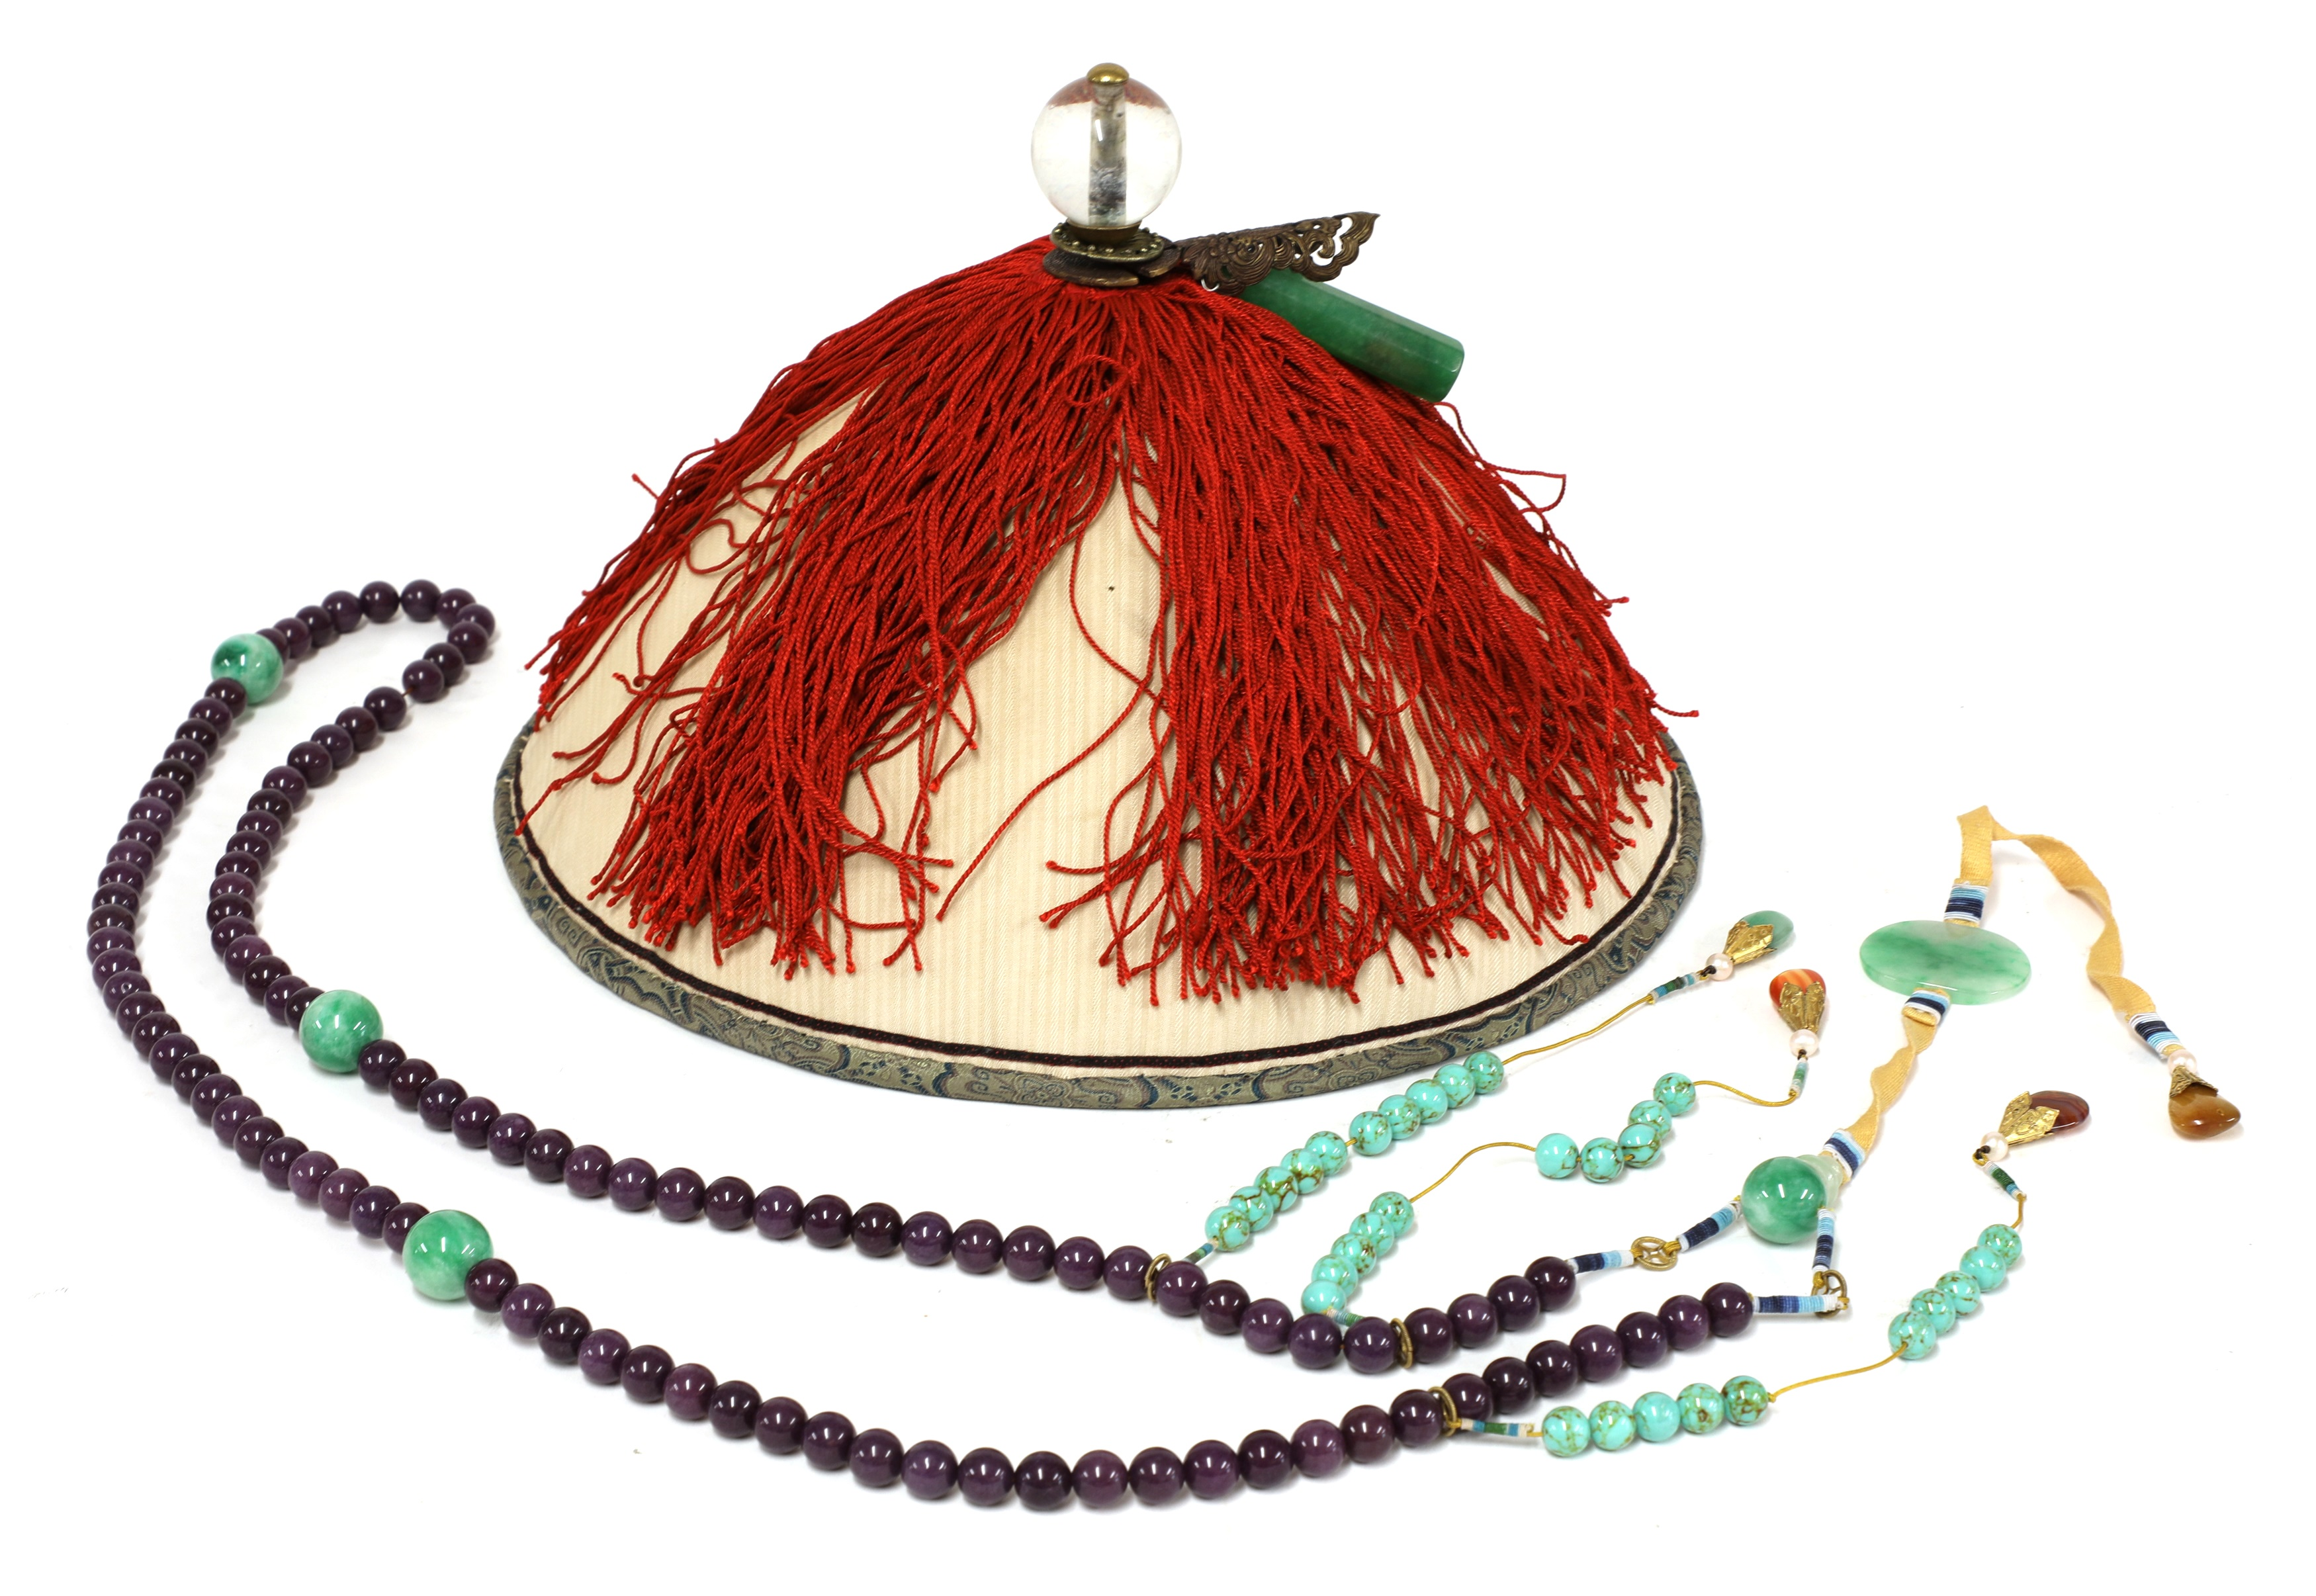 A Chinese official's hat, with a glass ball finial and a jade tube ornament, above red tassels covering the circular domed top, 32.5cm diameter, and a beaded chaozhu